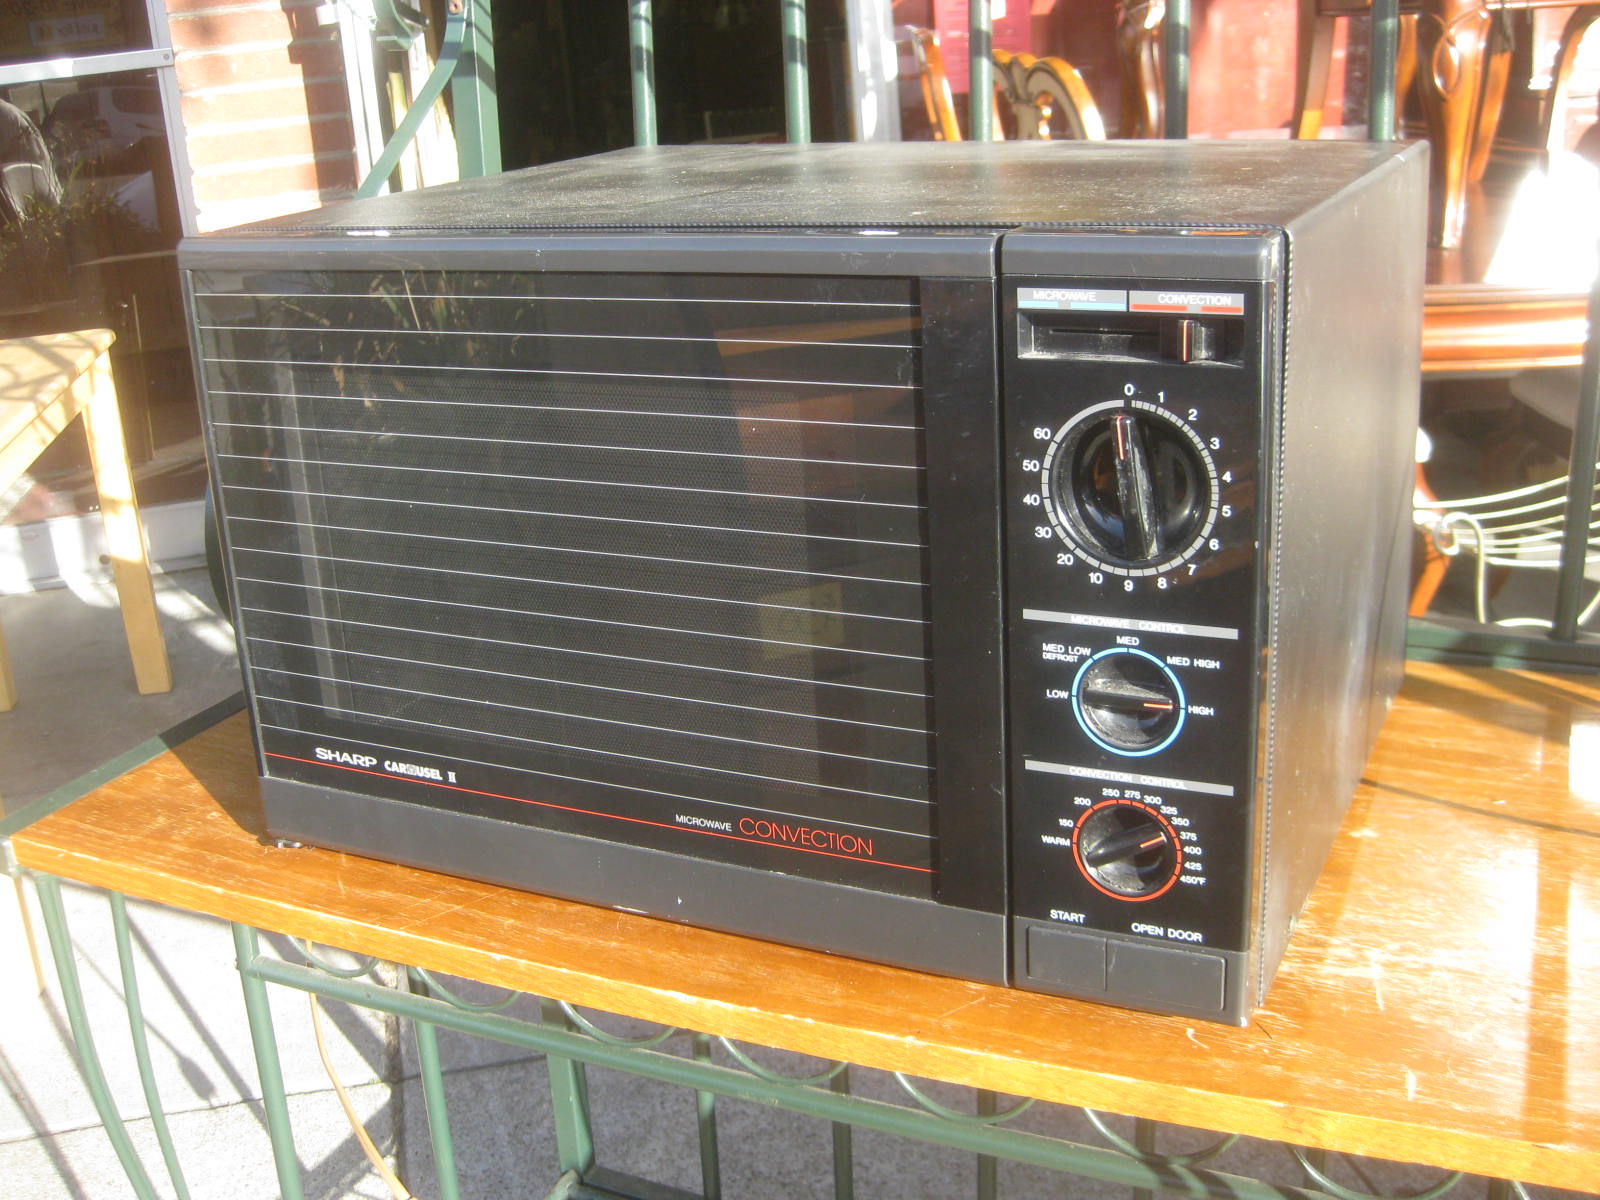 Sharp Carousel Ii Microwave Convection Oven 50